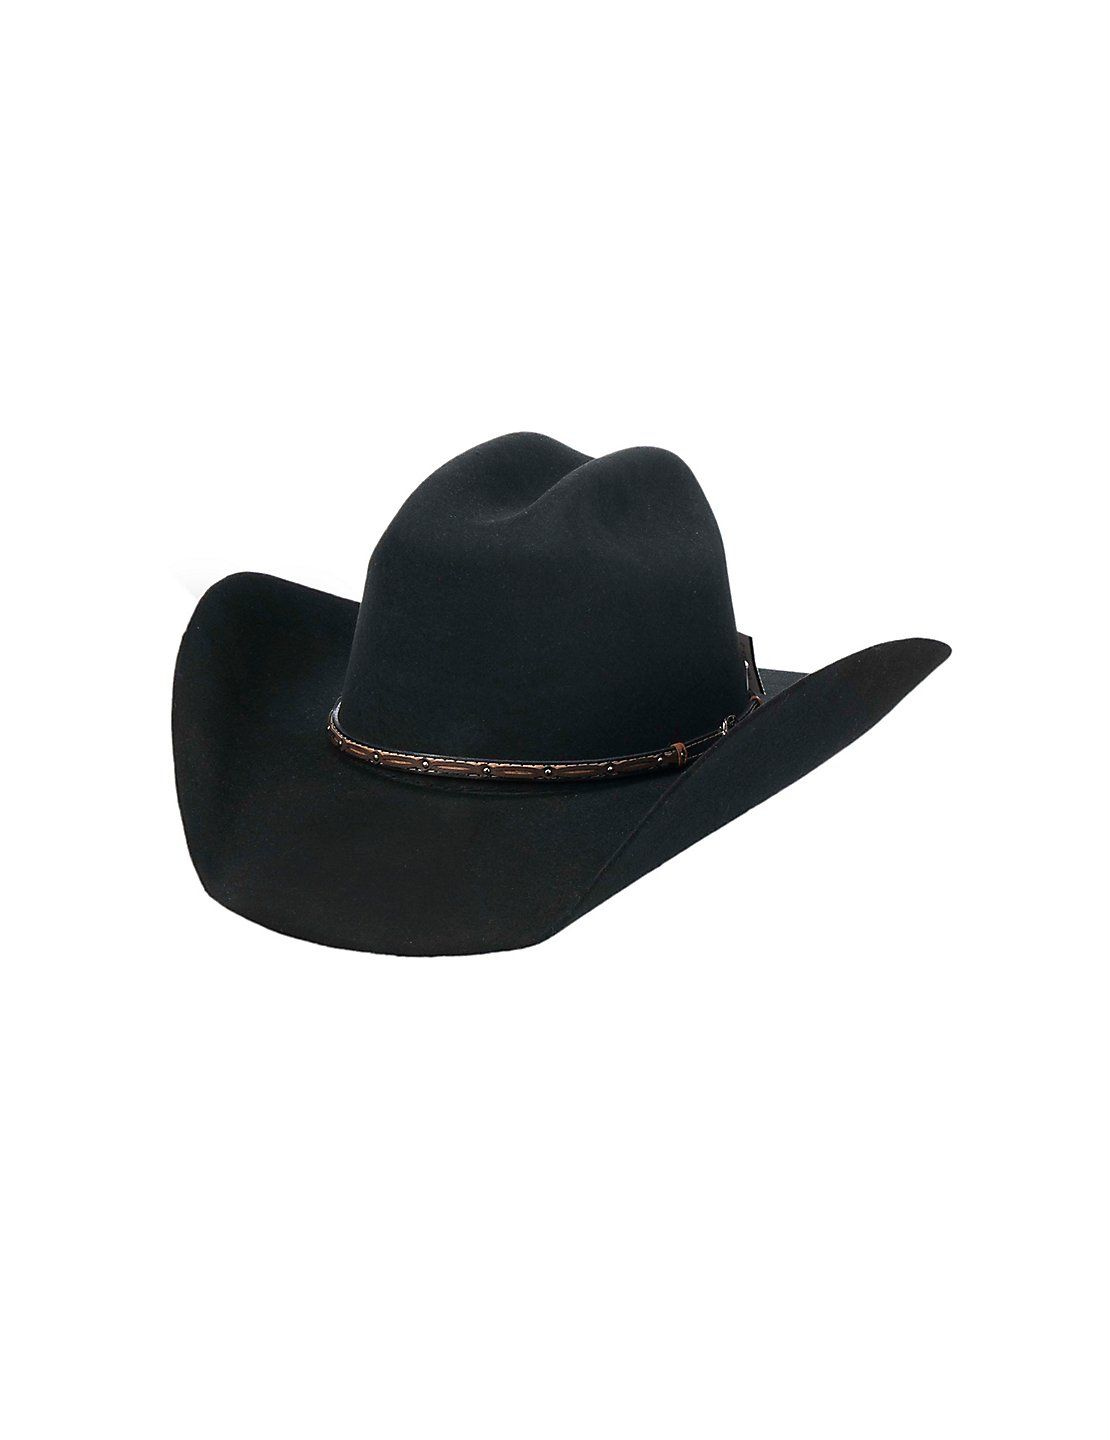 078b883e28a Cavender s Cowboy Collection 3X Black Wool Cowboy Hat